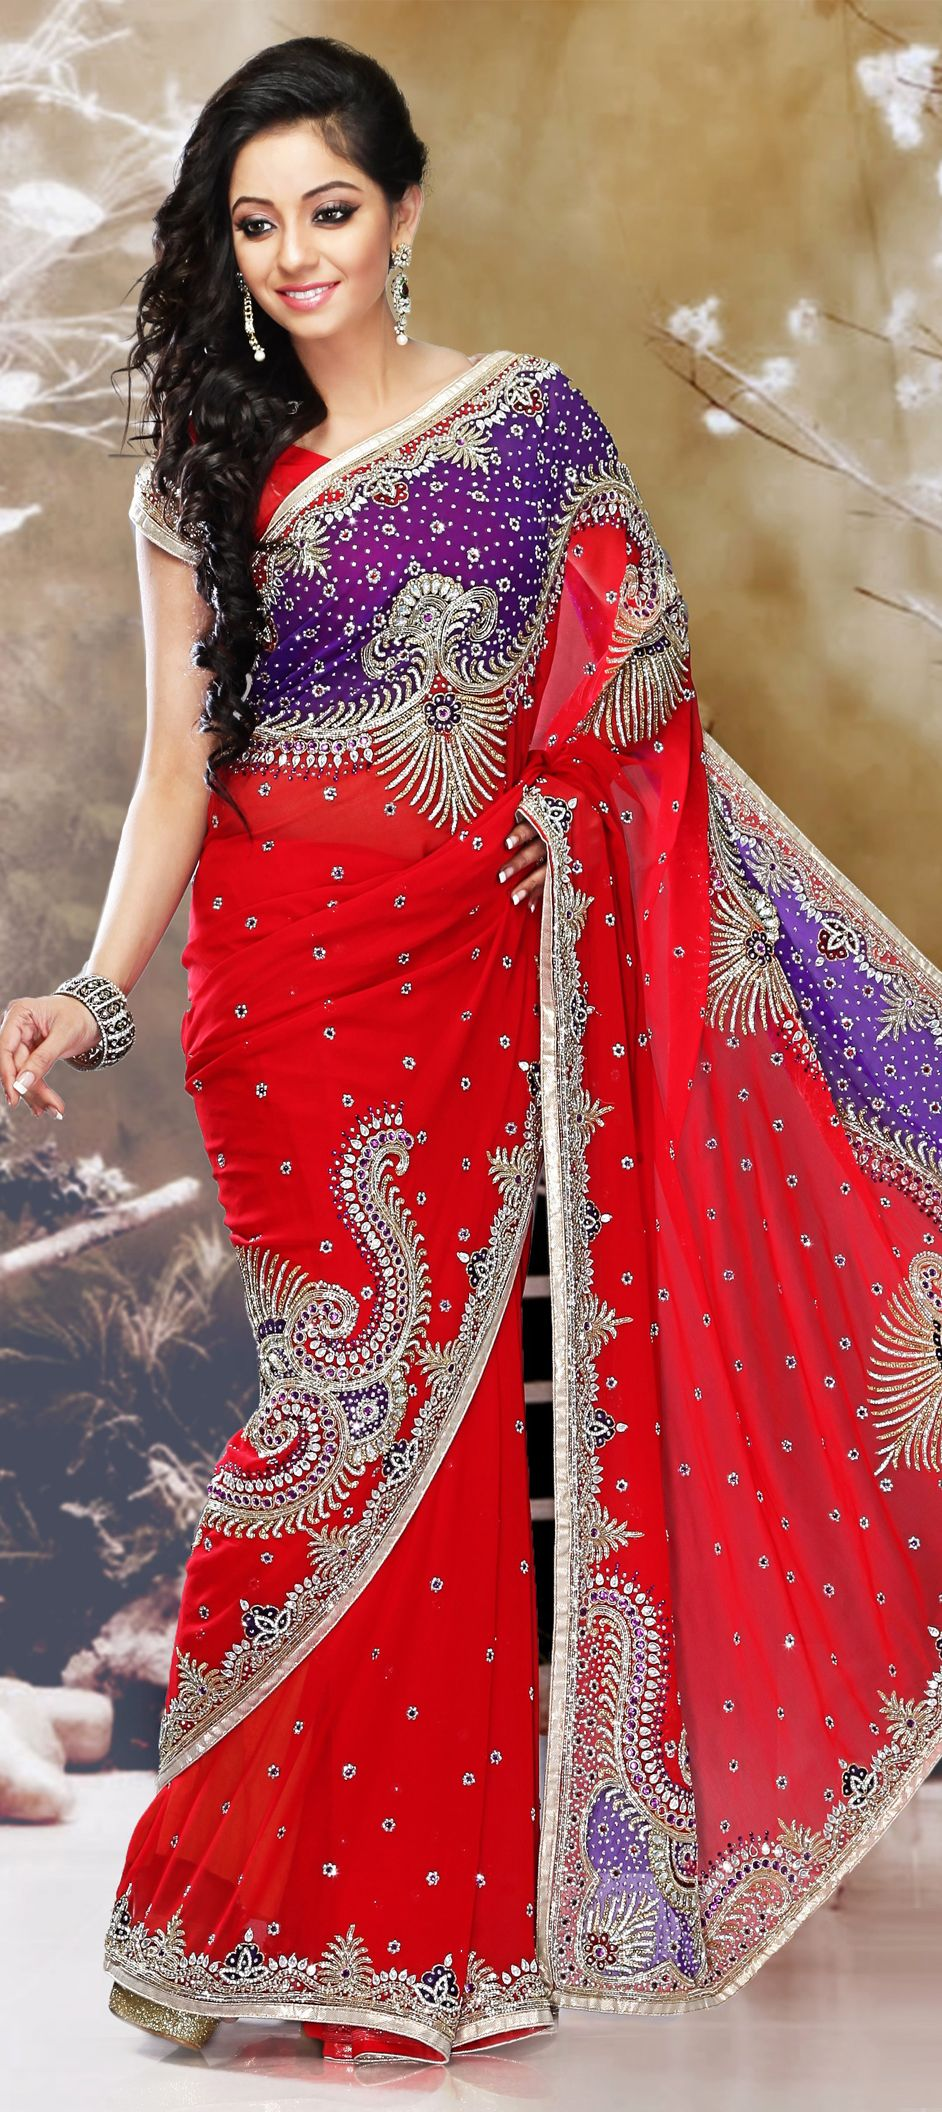 6c6554a25ac2 160271: Red and Maroon color family Bridal Wedding Sarees with matching  unstitched blouse.